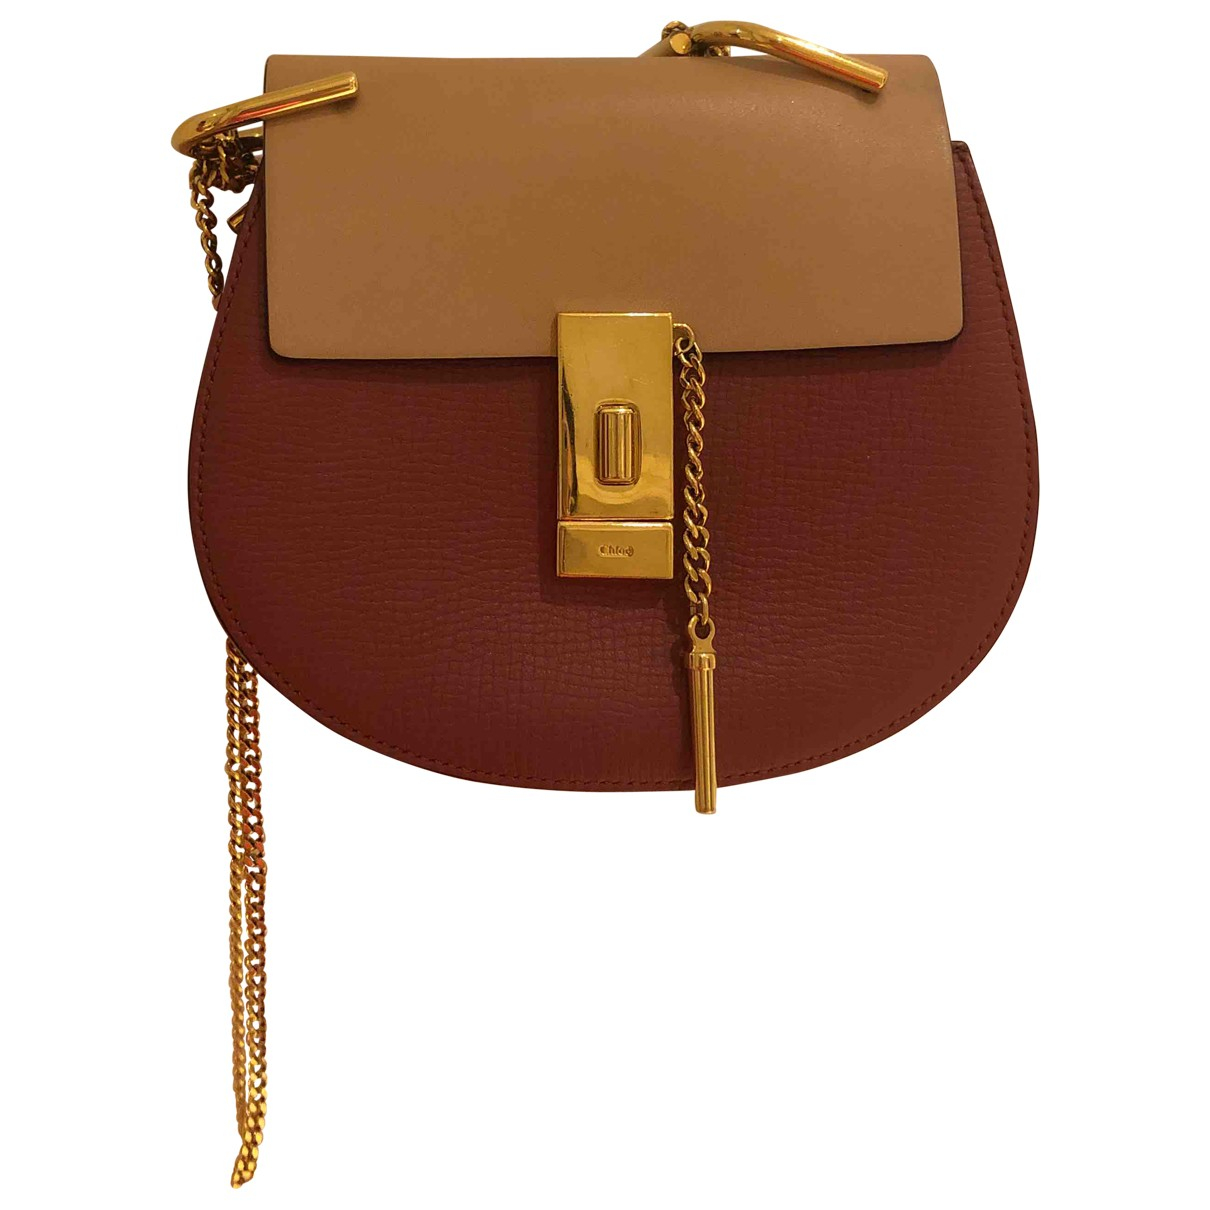 Chloé Drew Multicolour Leather handbag for Women \N